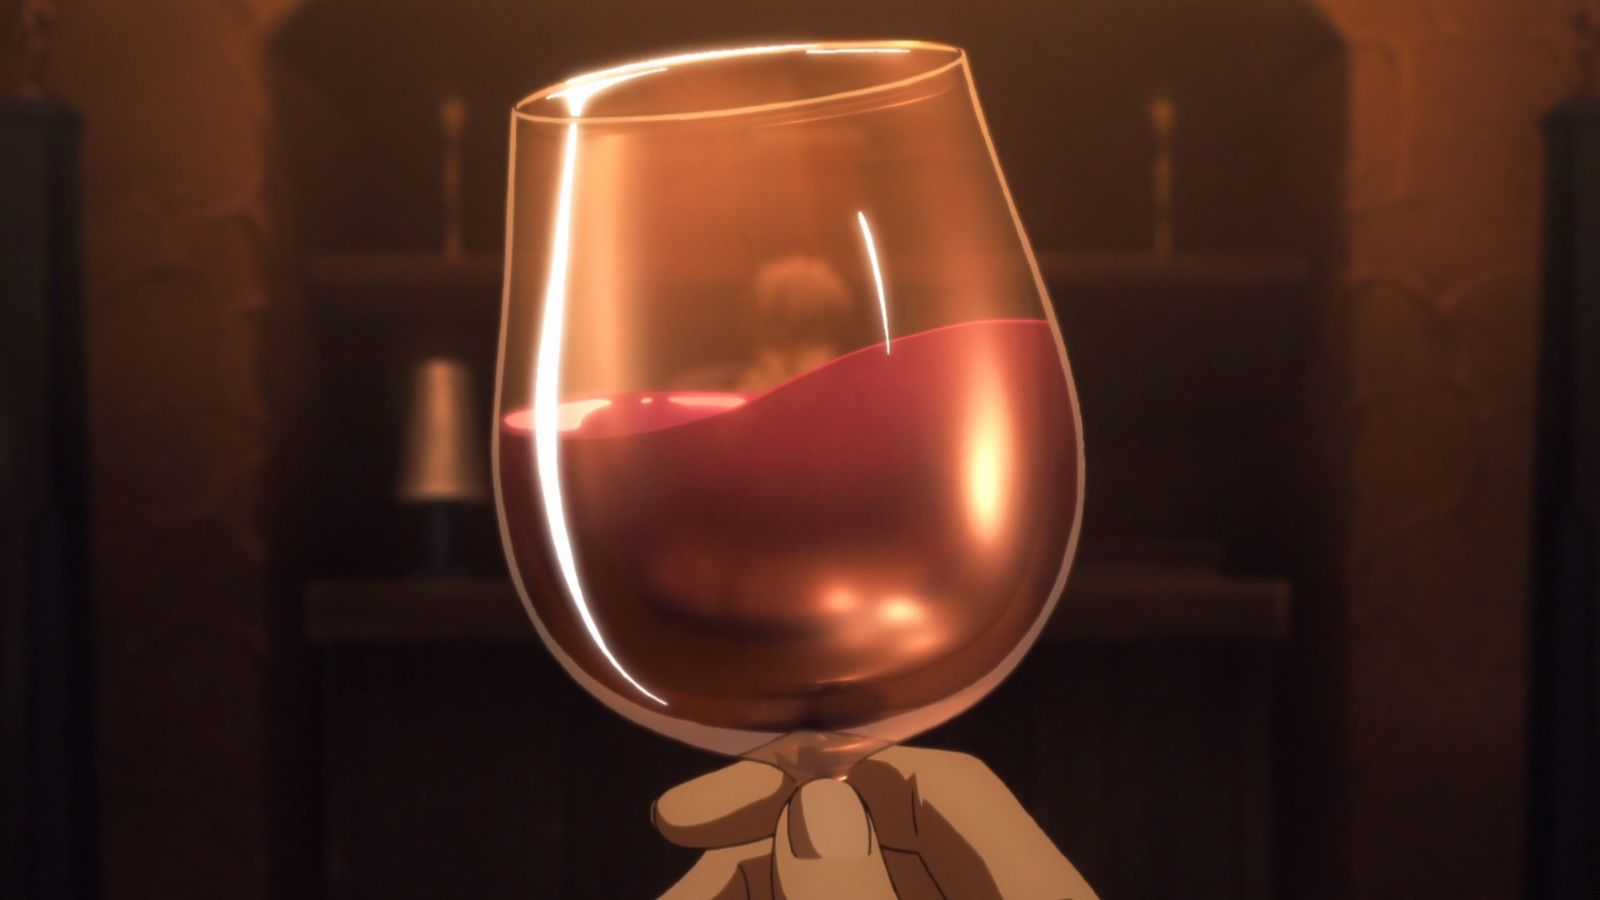 Fate Zero 12 Animefood Food Illustrations Food Pictures Alcoholic Drinks